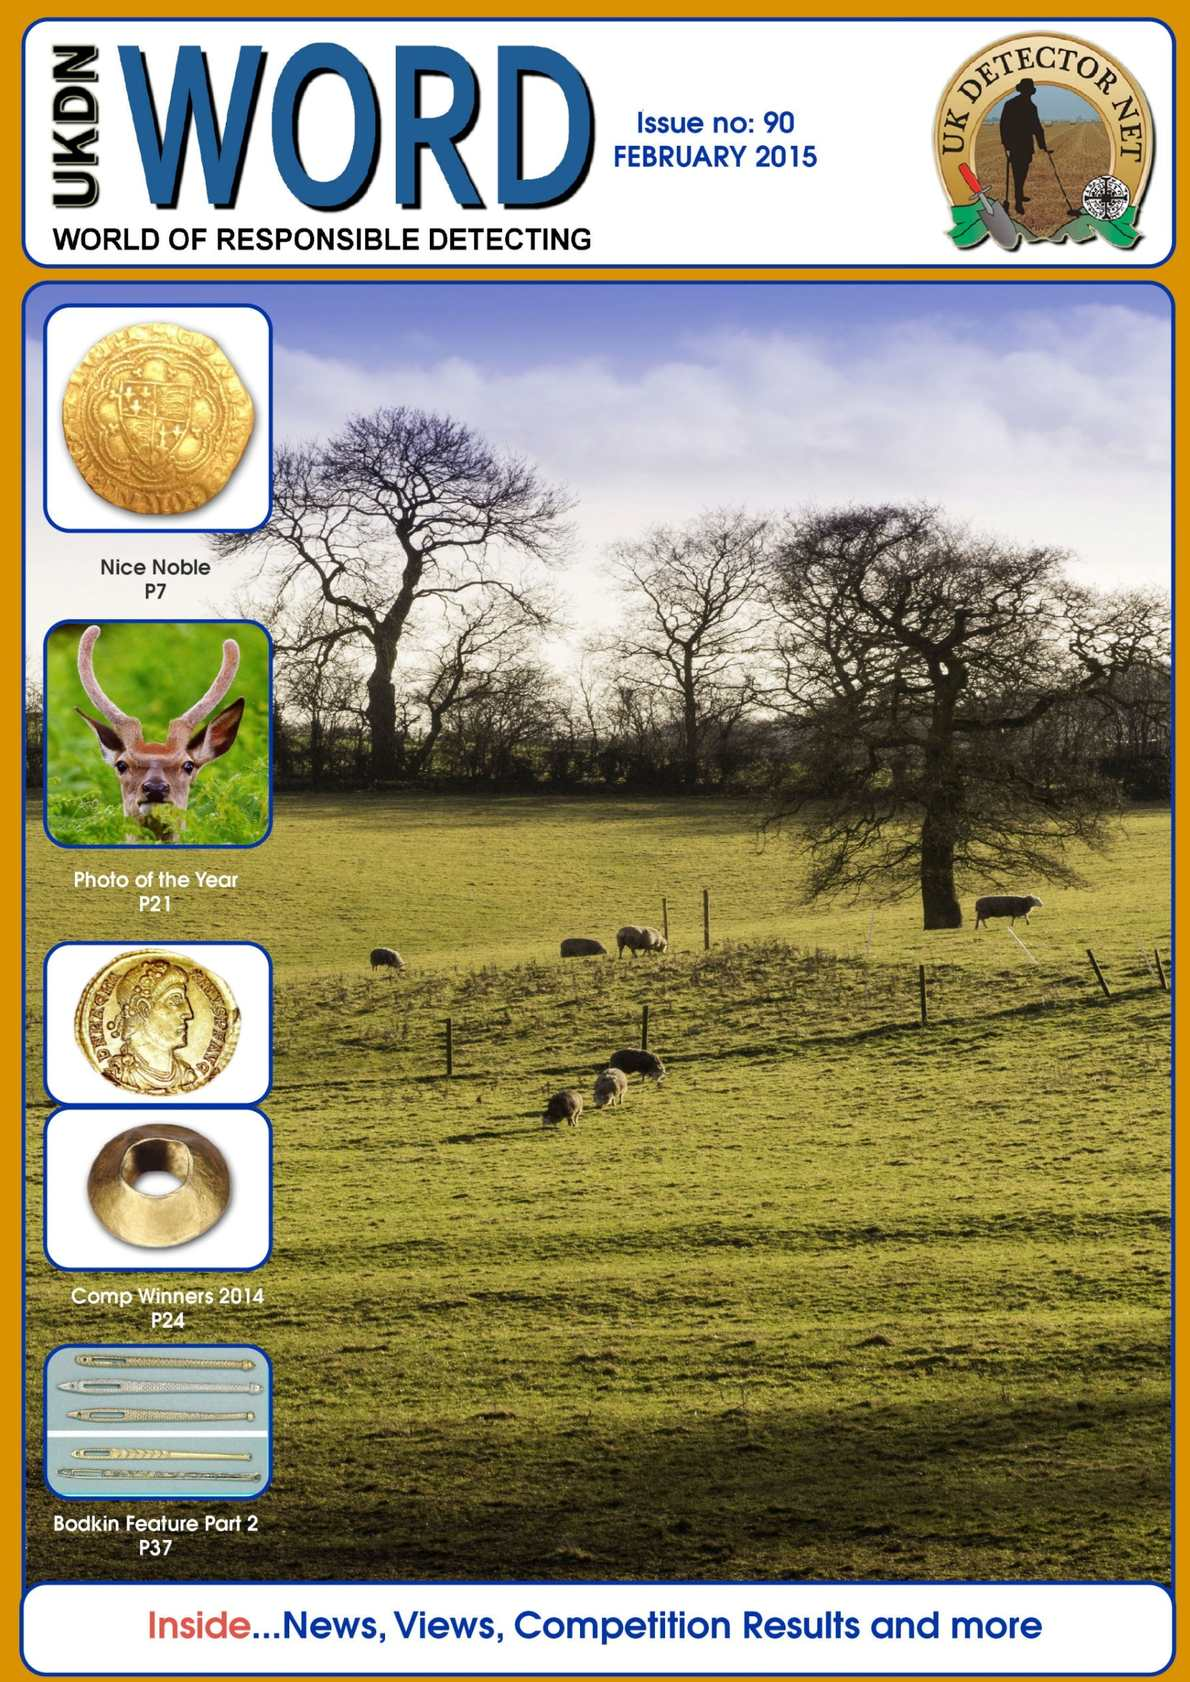 UKDN Word Magazine Issue 90 February 2015